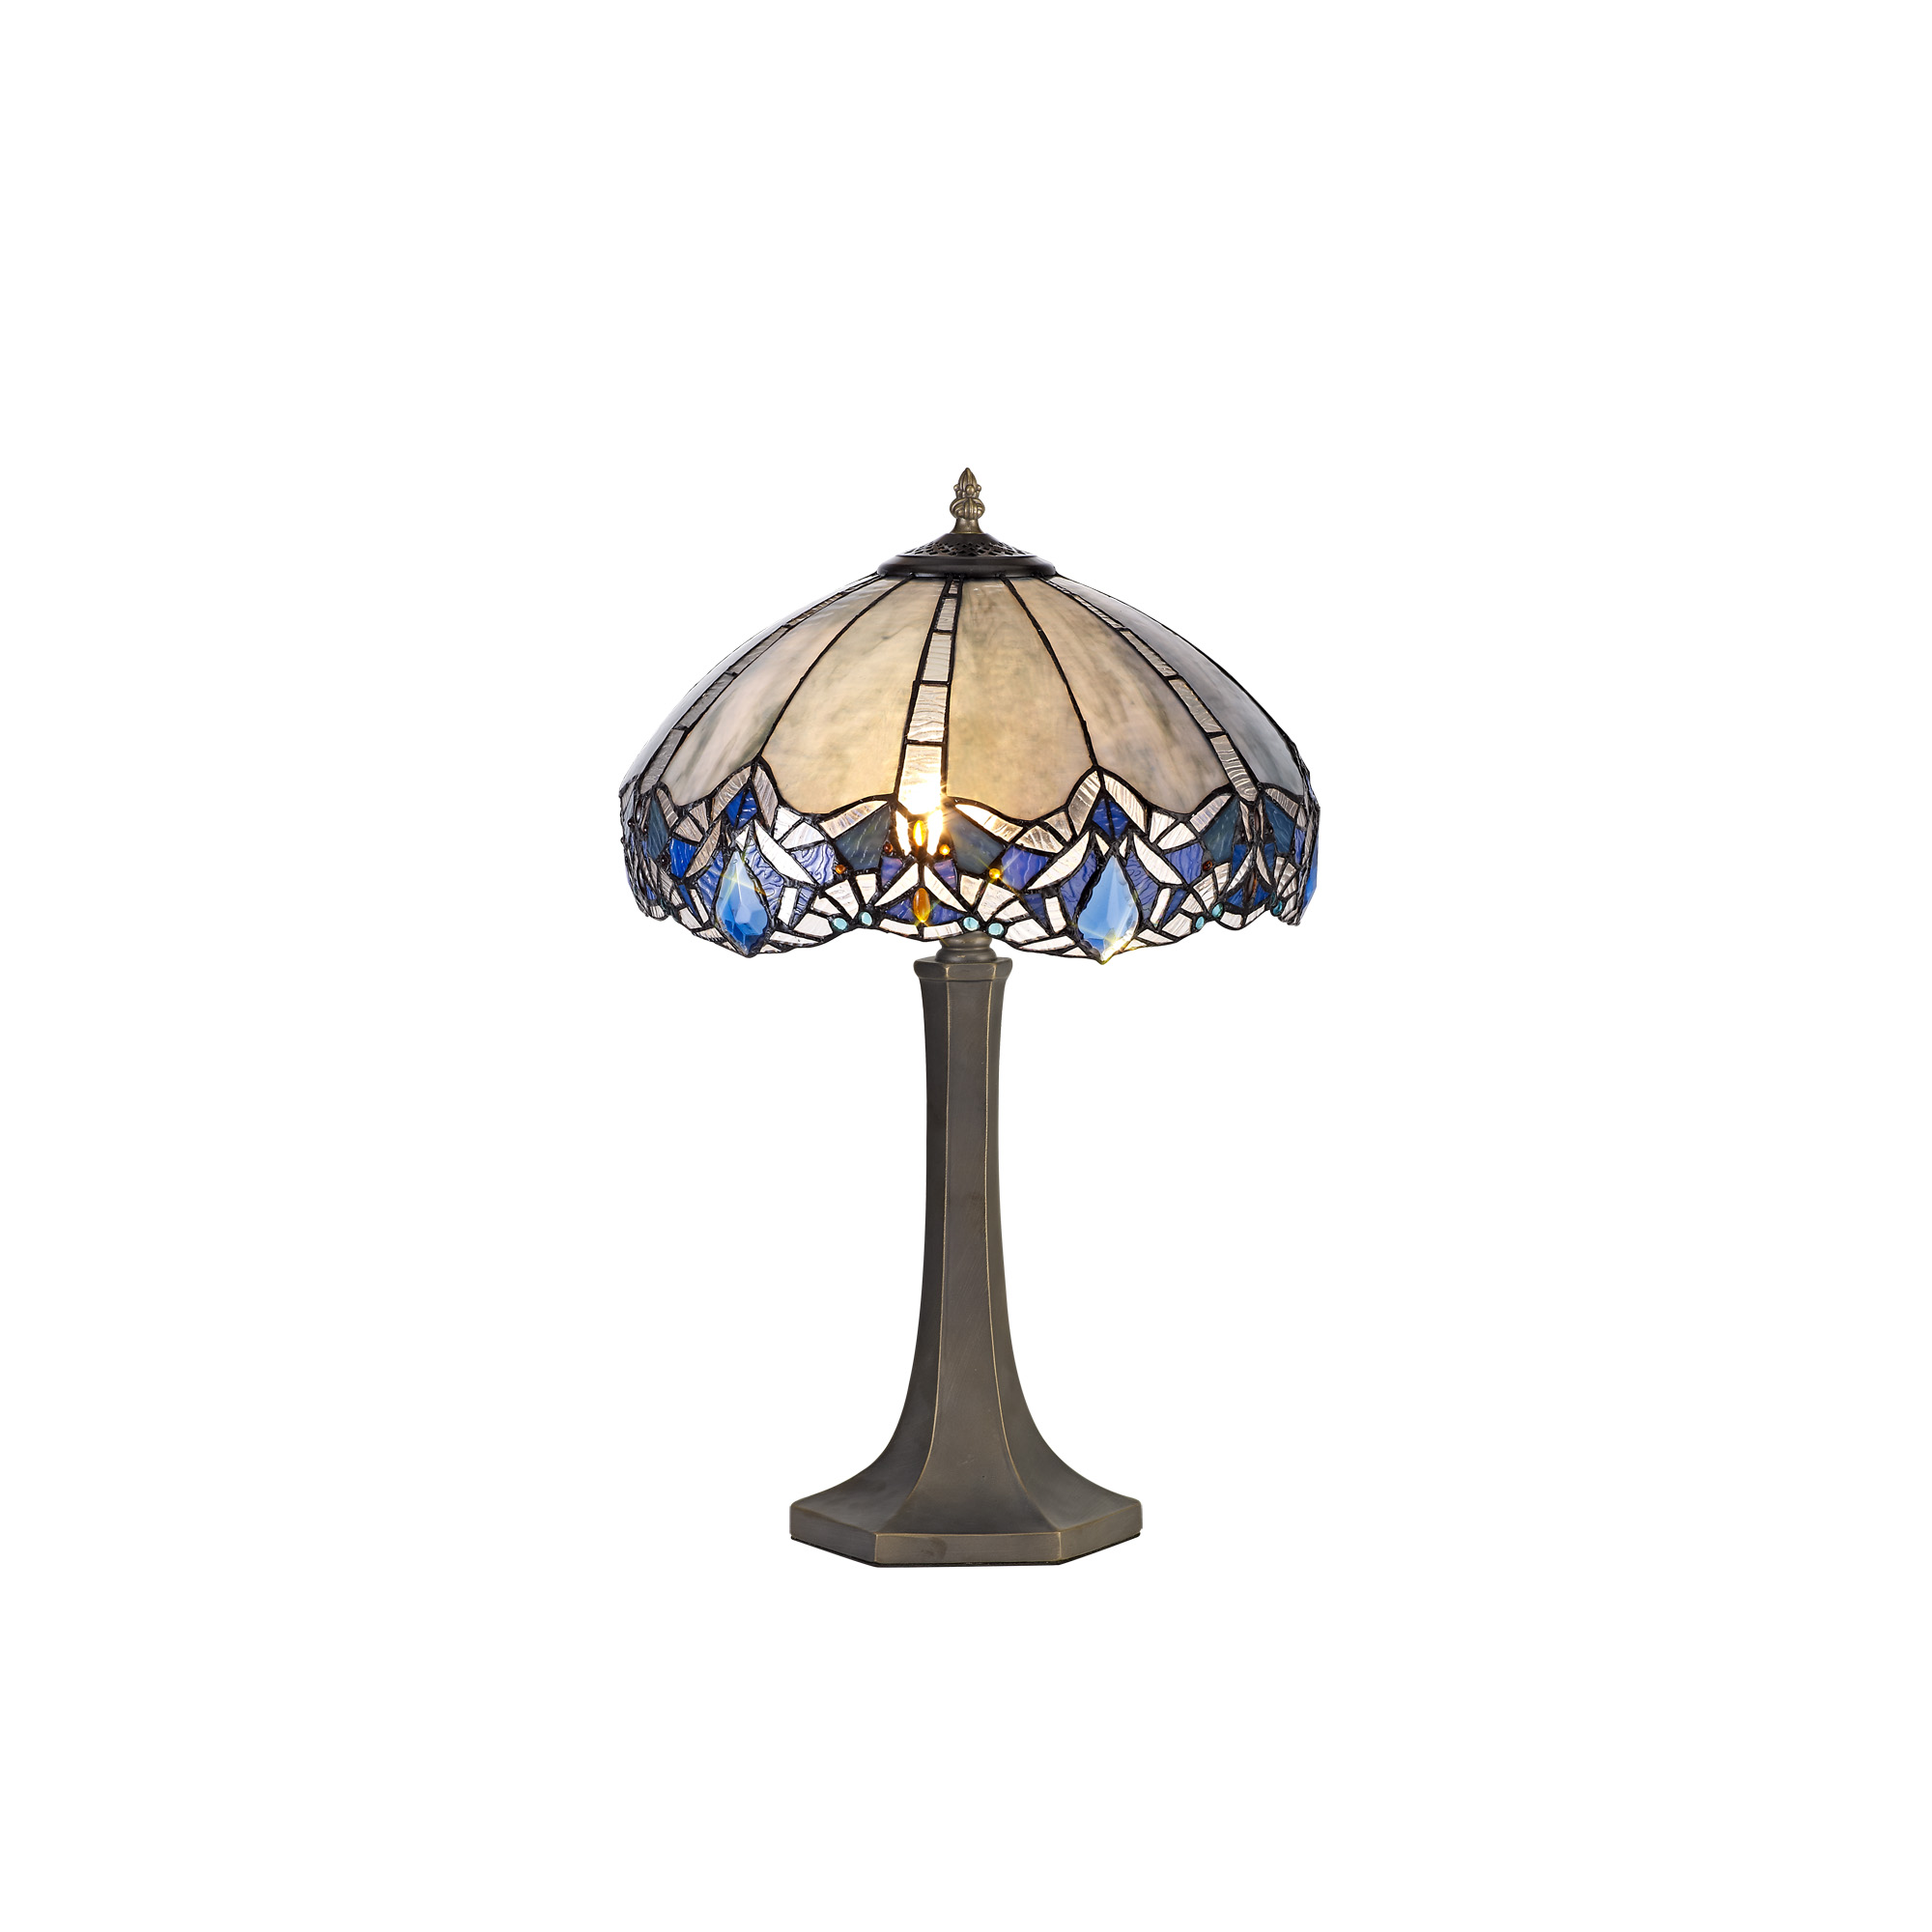 2 Light Octagonal Table Lamp E27 With 40cm Tiffany Shade, Blue/Clear Crystal/Aged Antique Brass